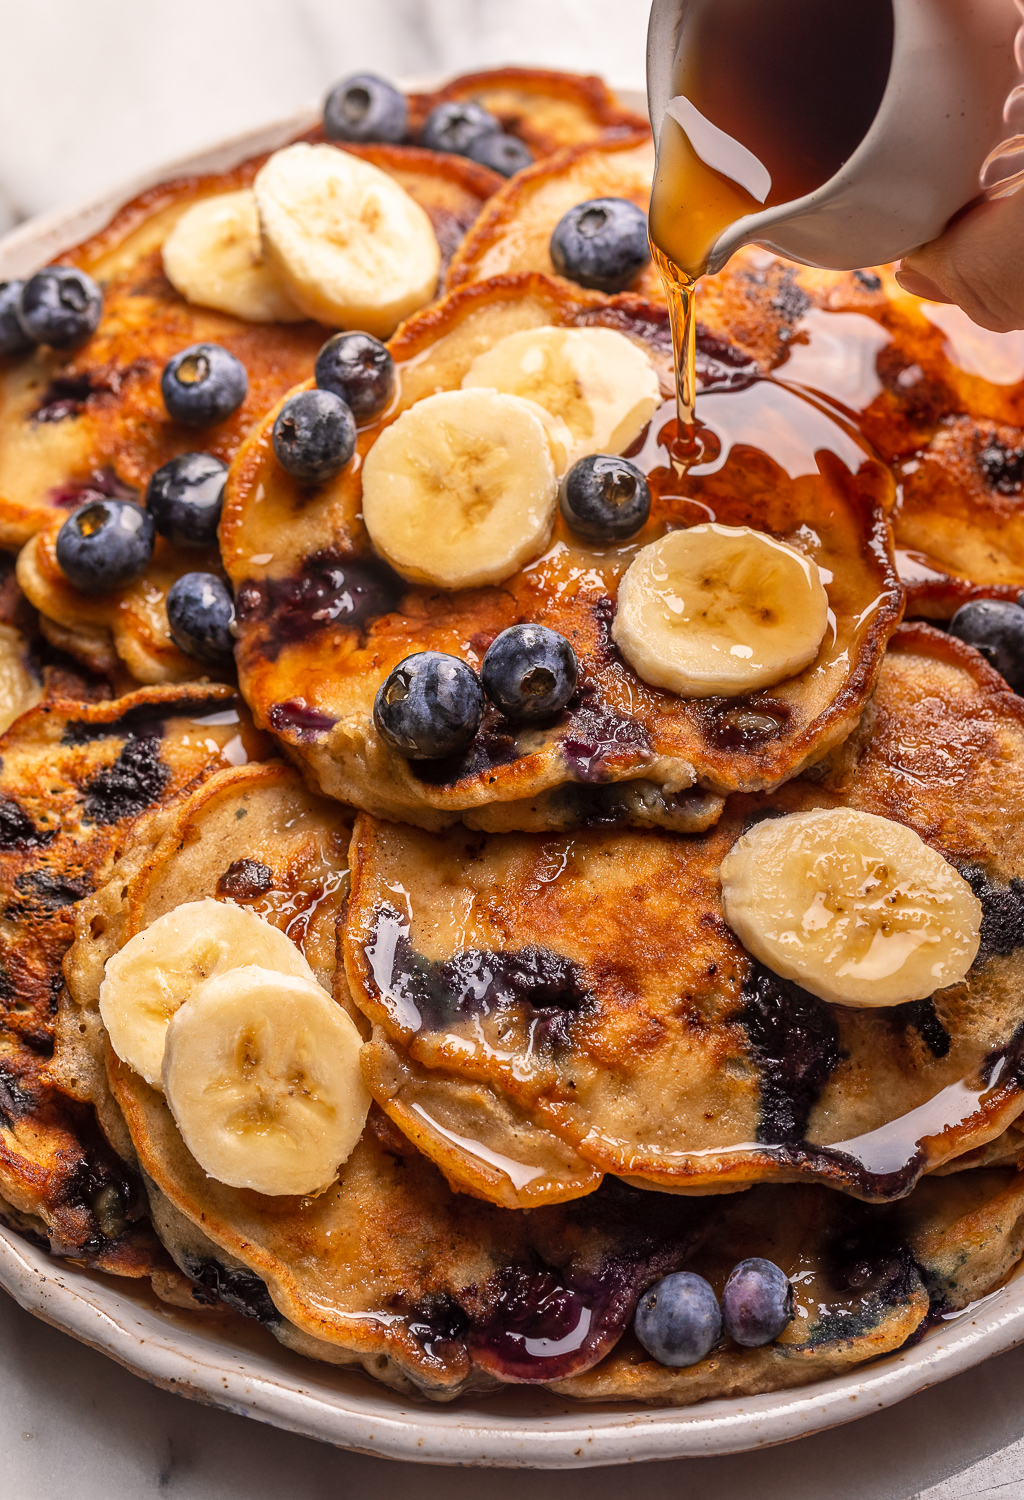 Ripe bananas and fresh blueberries make these Banana Blueberry Pancakes tender, fluffy, and flavorful! The pancake batter comes together in just minutes, and is quickly cooked to golden brown on a hot skillet. Top with maple syrup, extra blueberries, and banana slices for a beautiful breakfast at home!